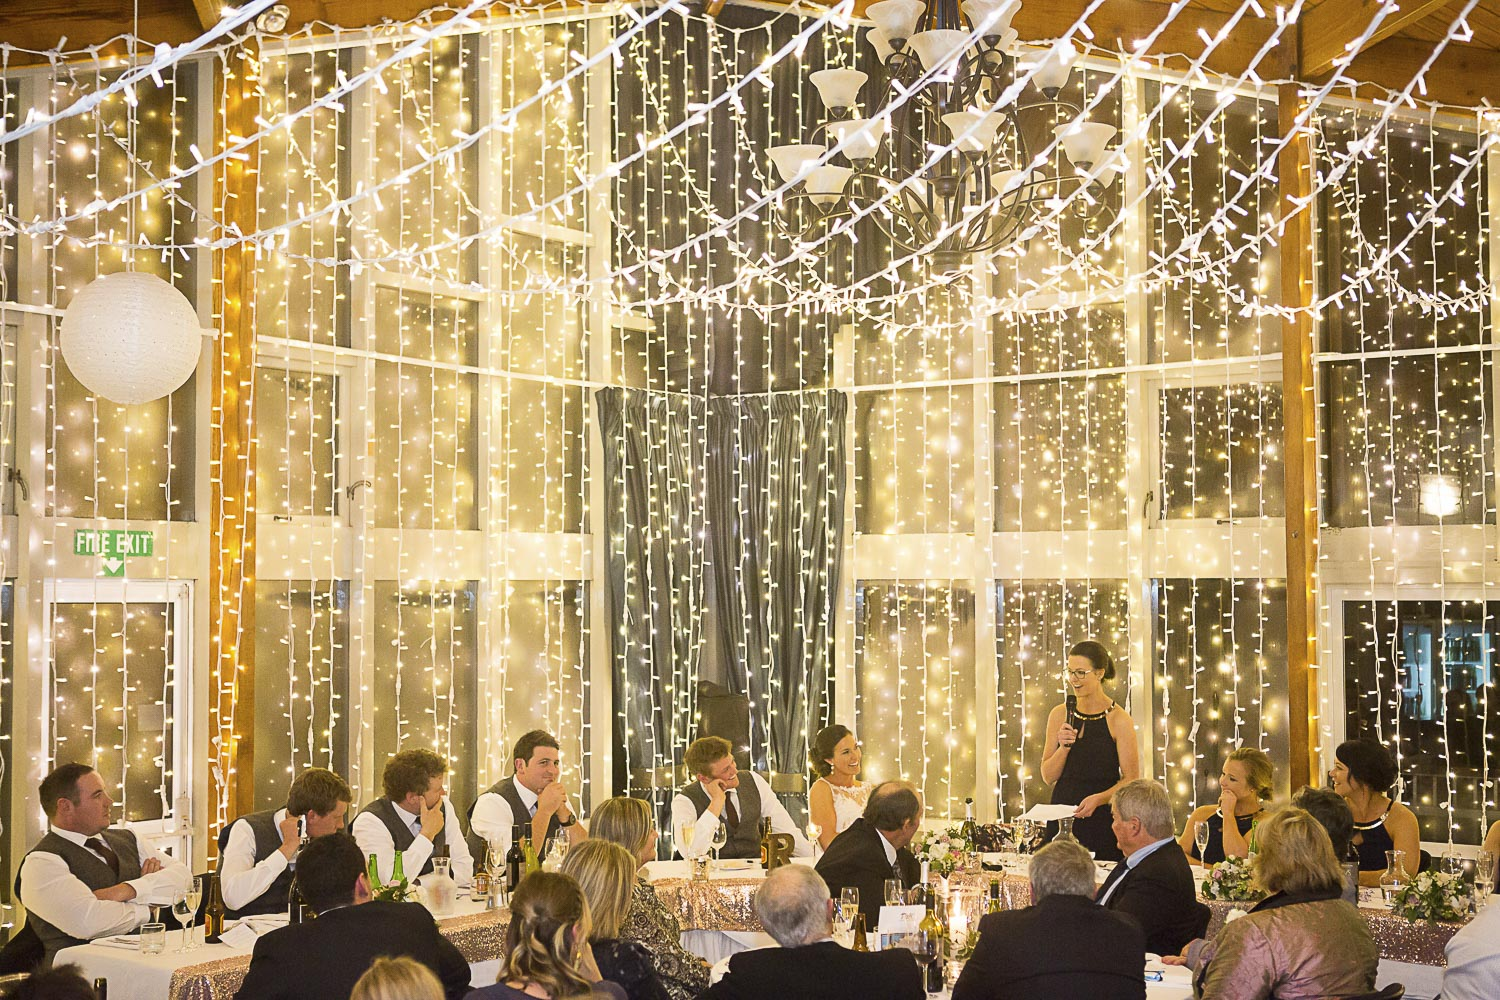 Palmerston North wedding venues, The Chalet